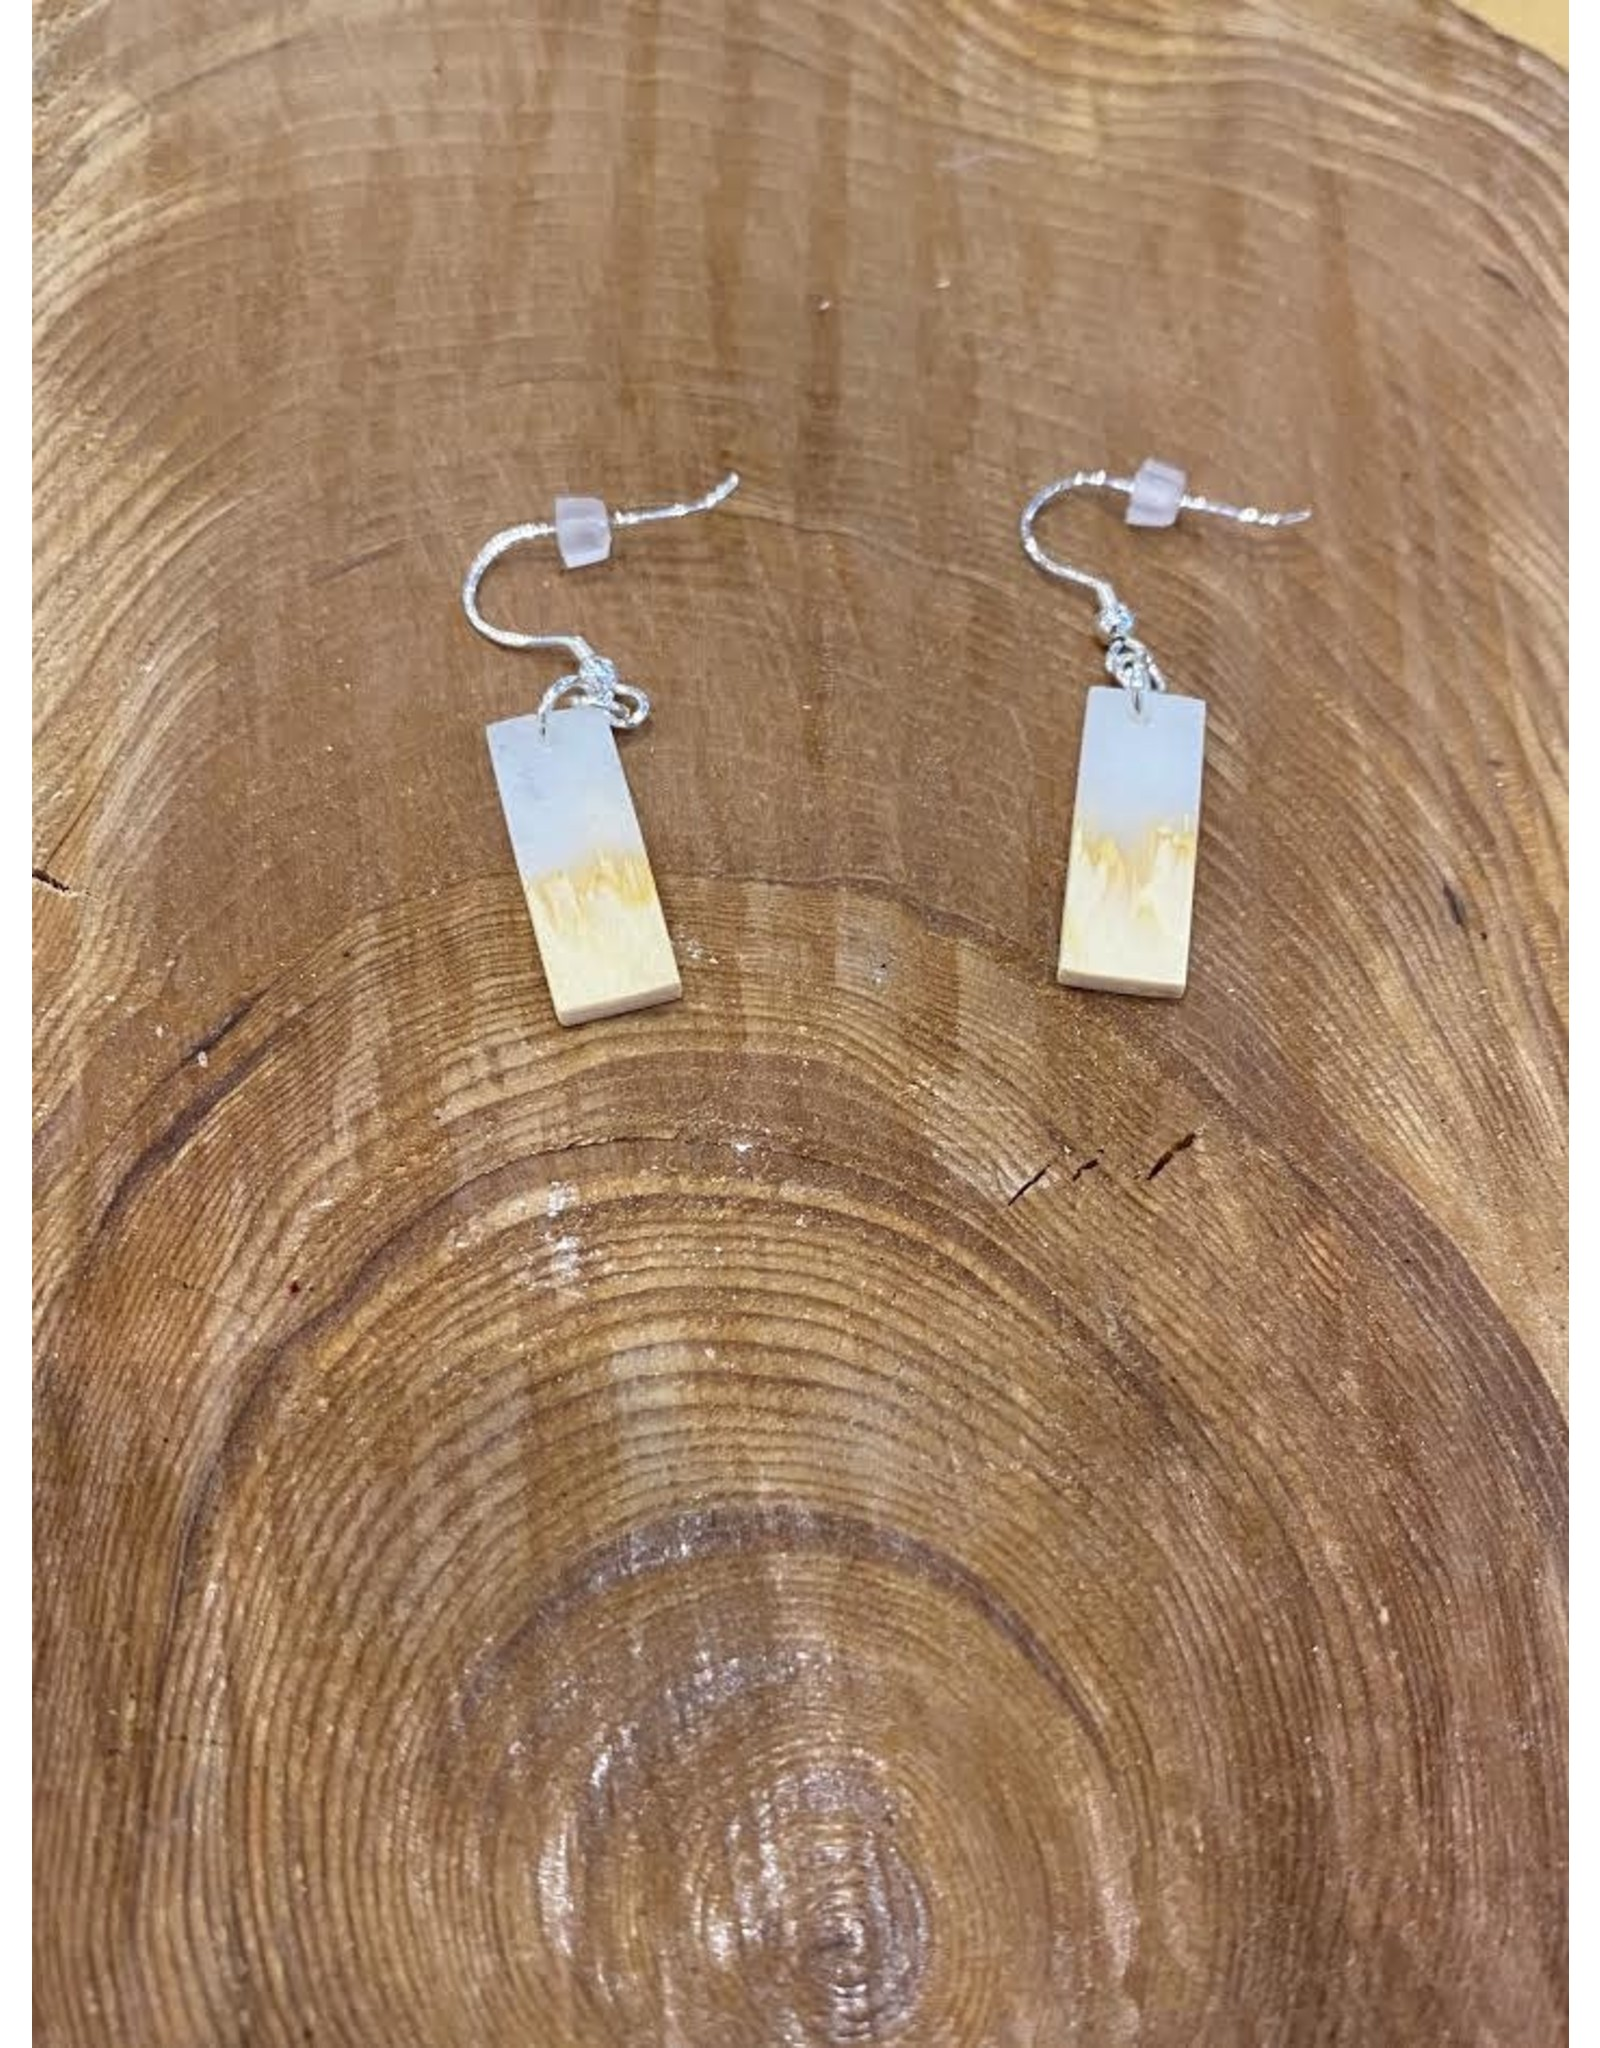 Timber and Tides Timber & Tides Earrings White Yellow Cedar II